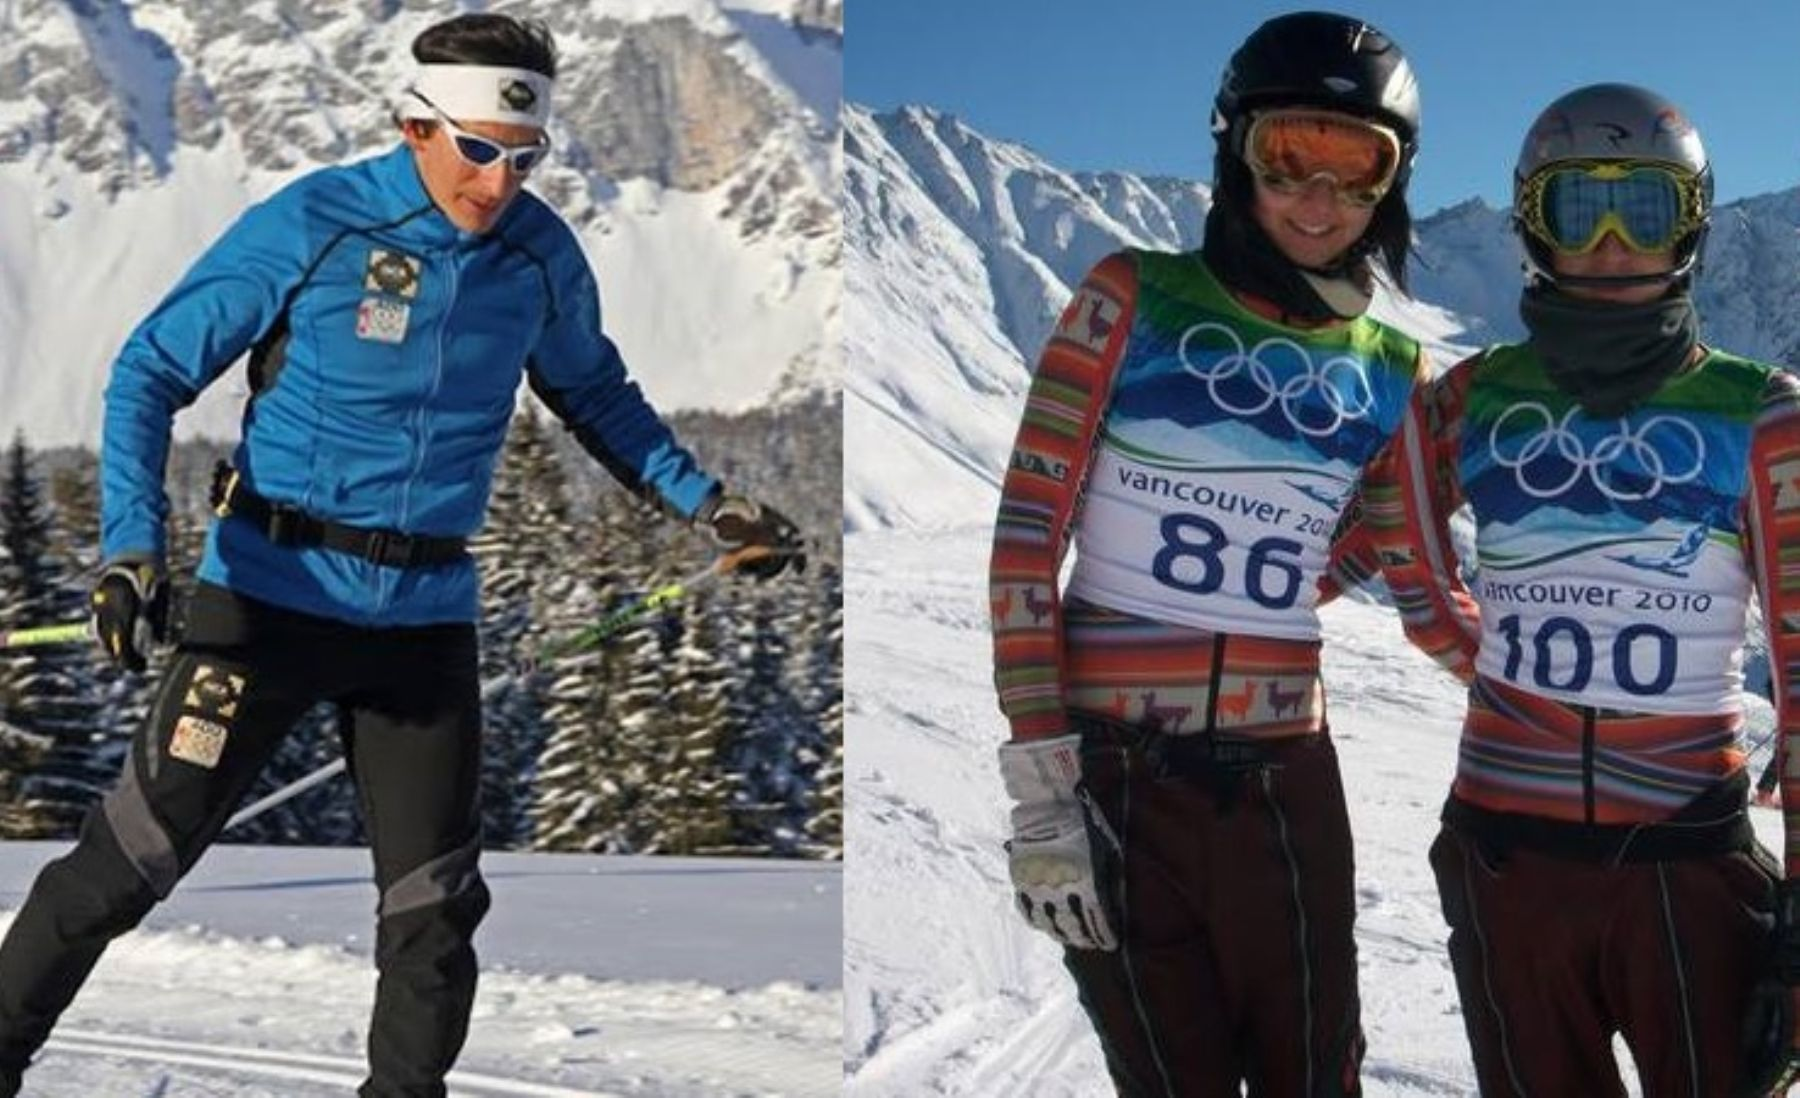 Three Peruvian athletes will compete at the upcoming Sochi Games.